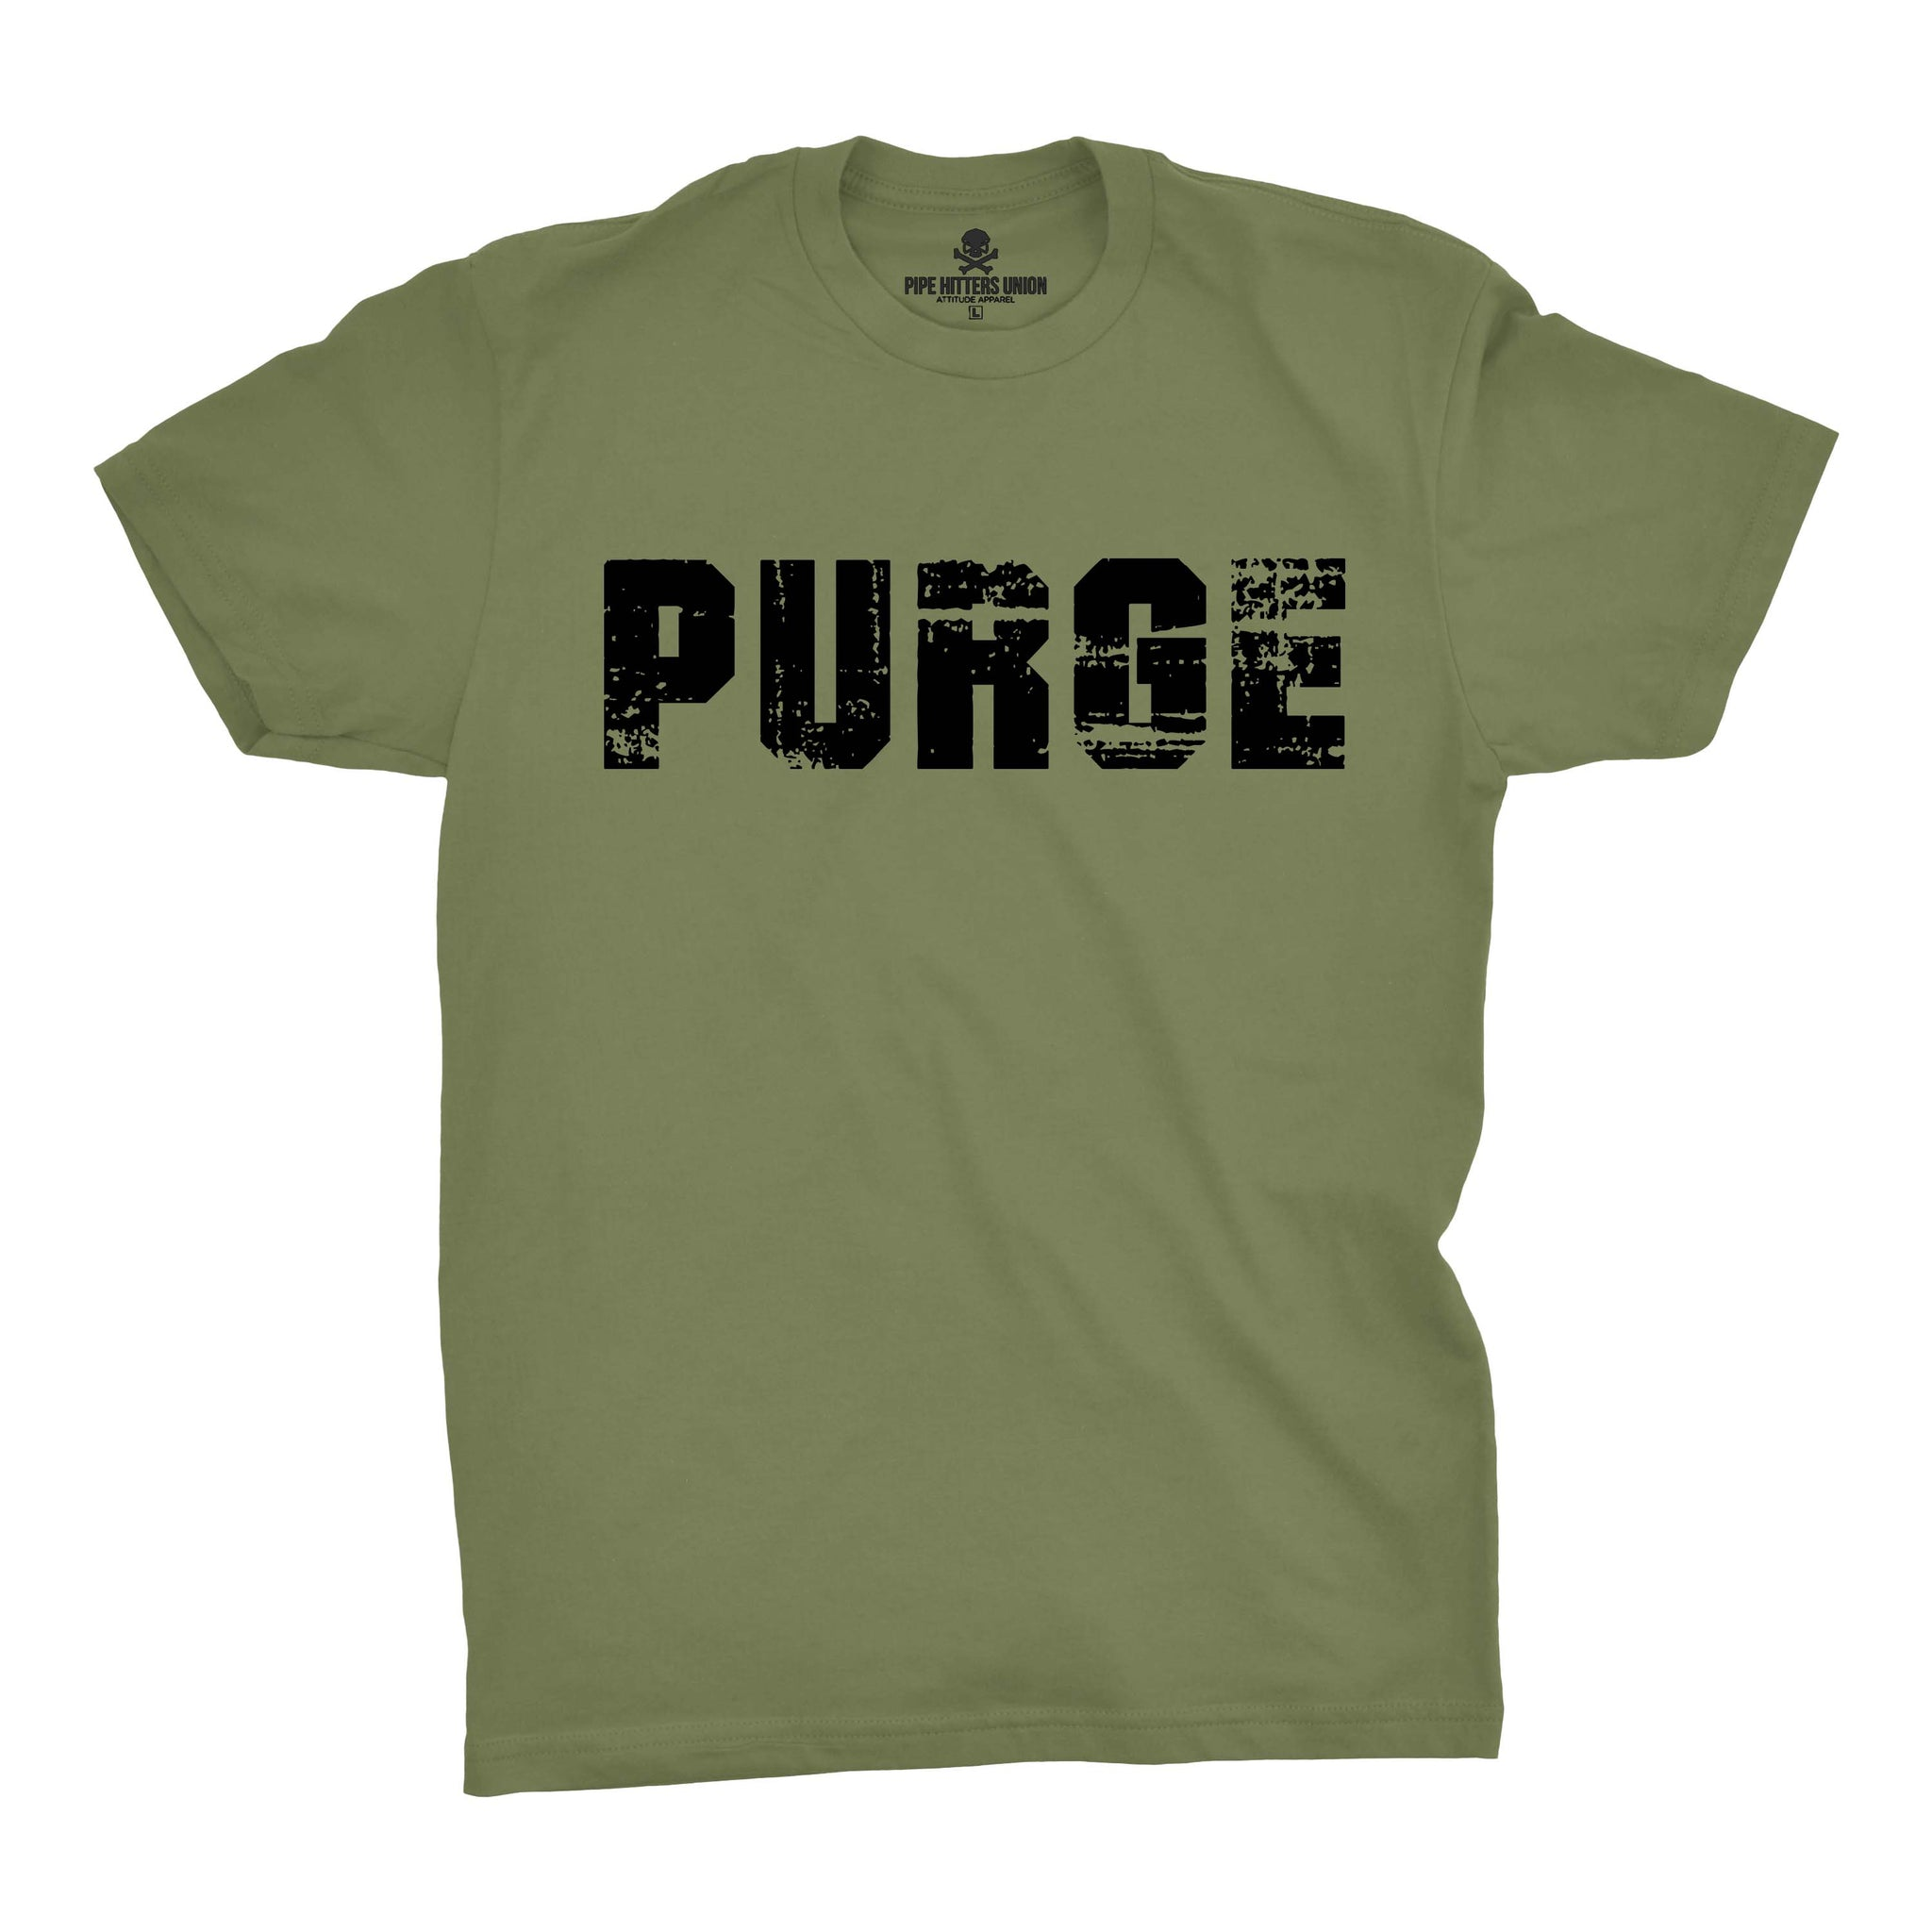 Purge - Military Green - T-Shirts - Pipe Hitters Union